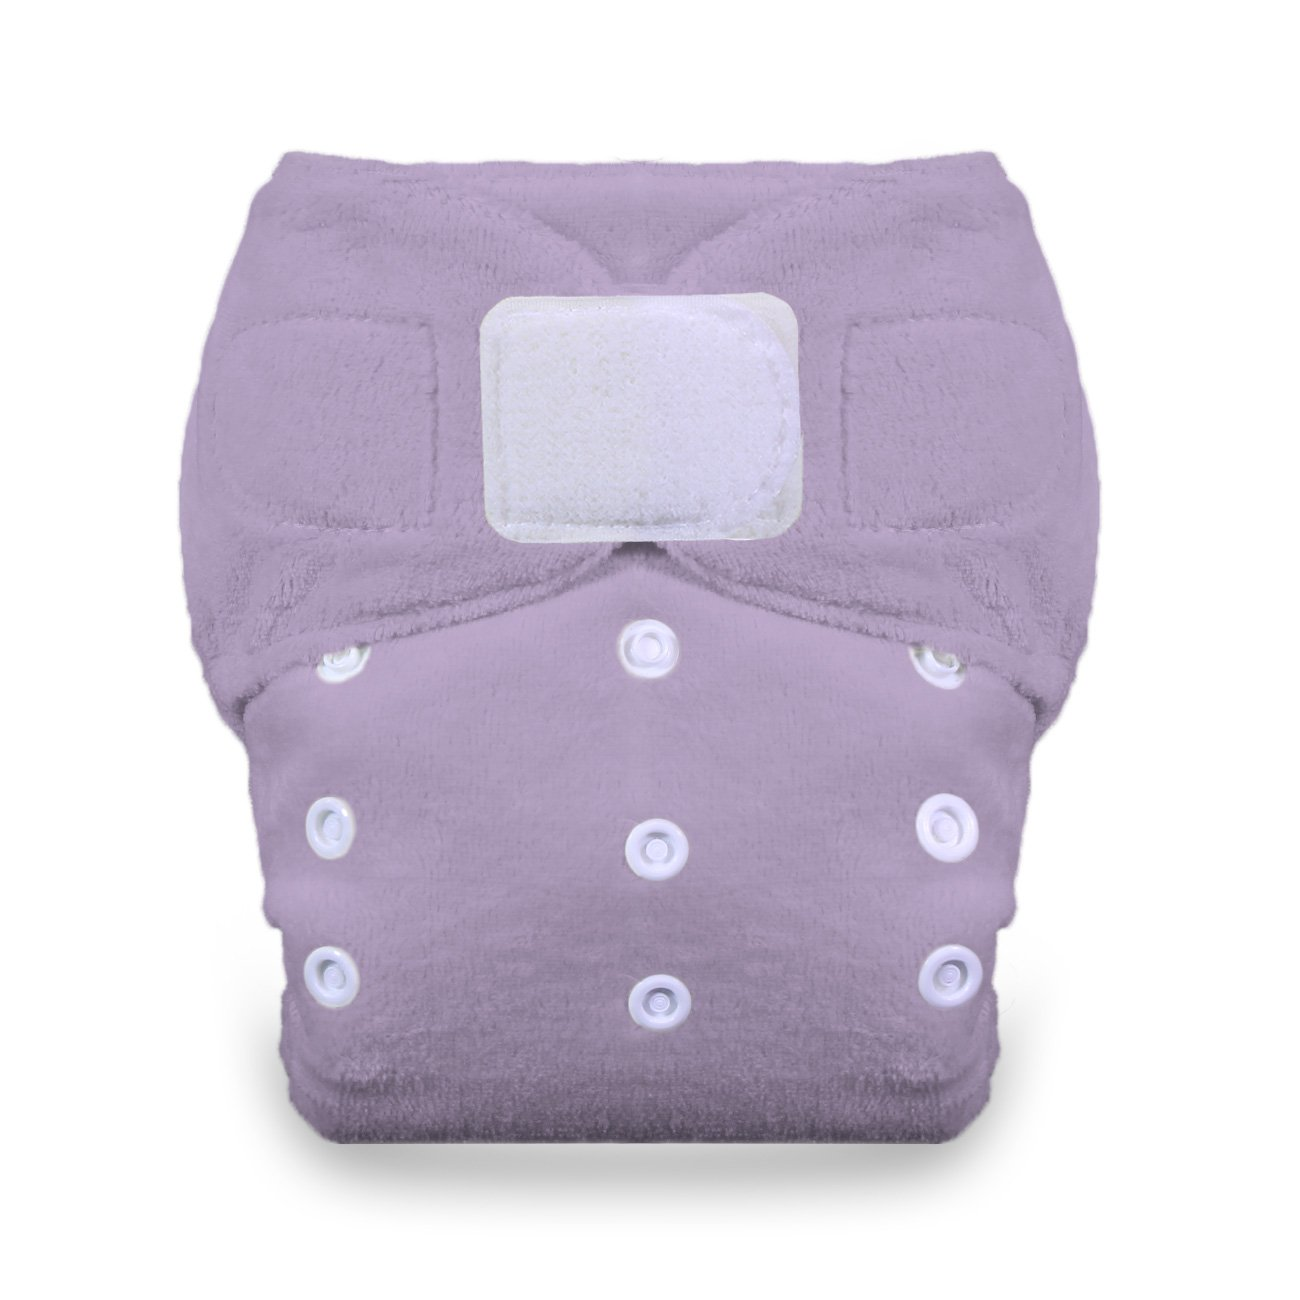 Thirsties Duo Fab Fitted Cloth Diaper with Hook and Loop, Honeydew, Size 2 TDFHLH2